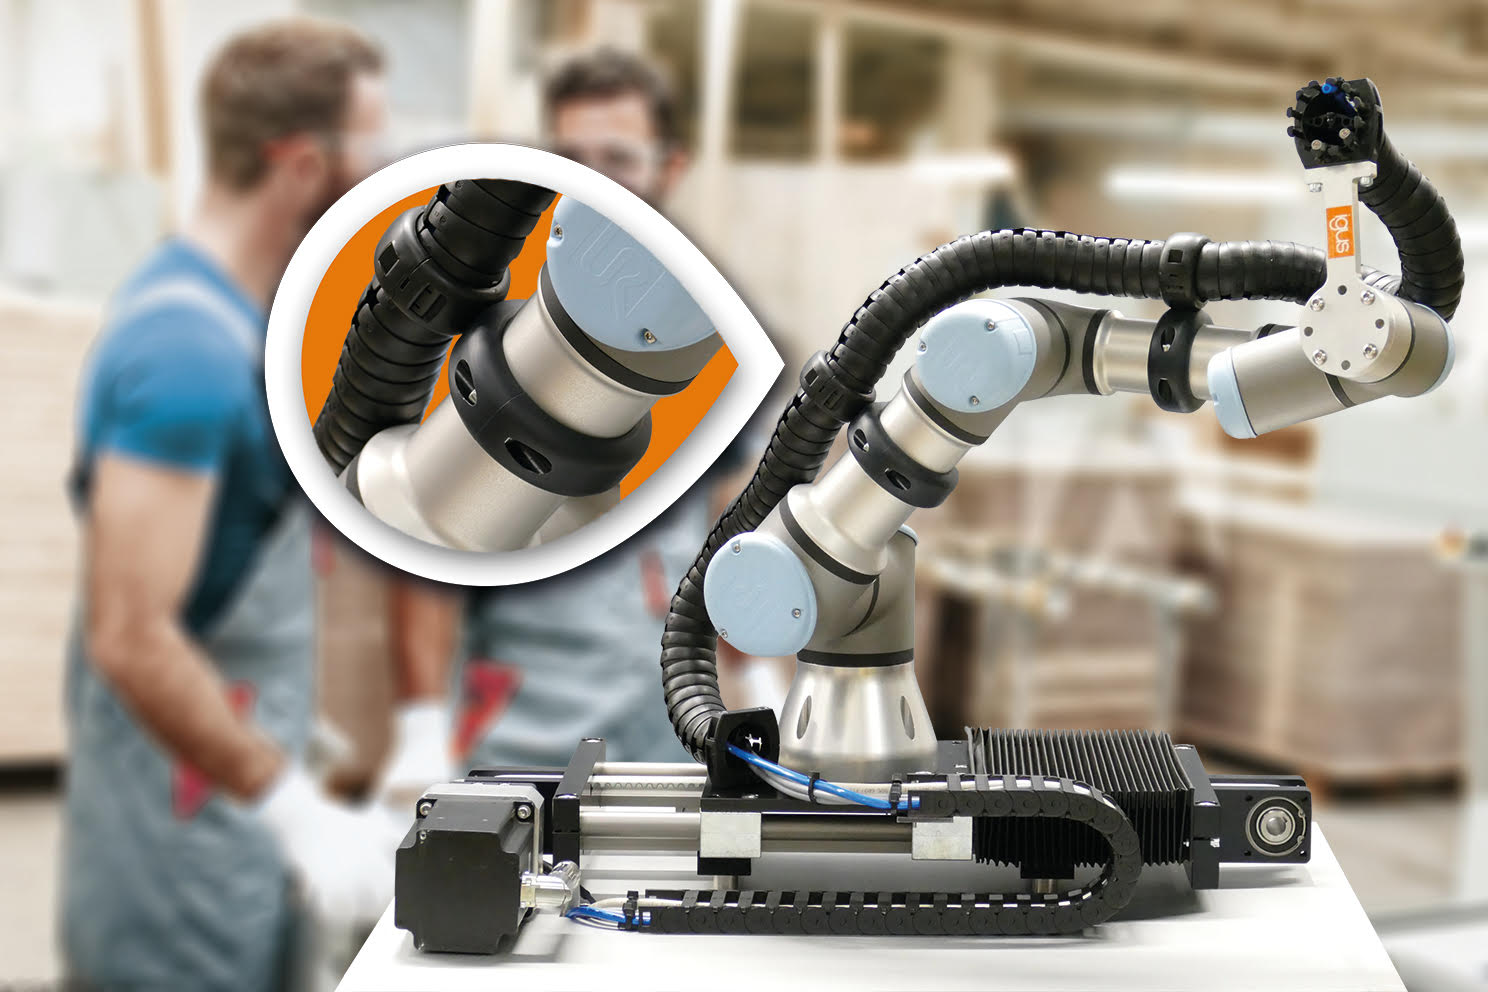 New Clamp From igus Ensures Safe Interaction of Man, Machine